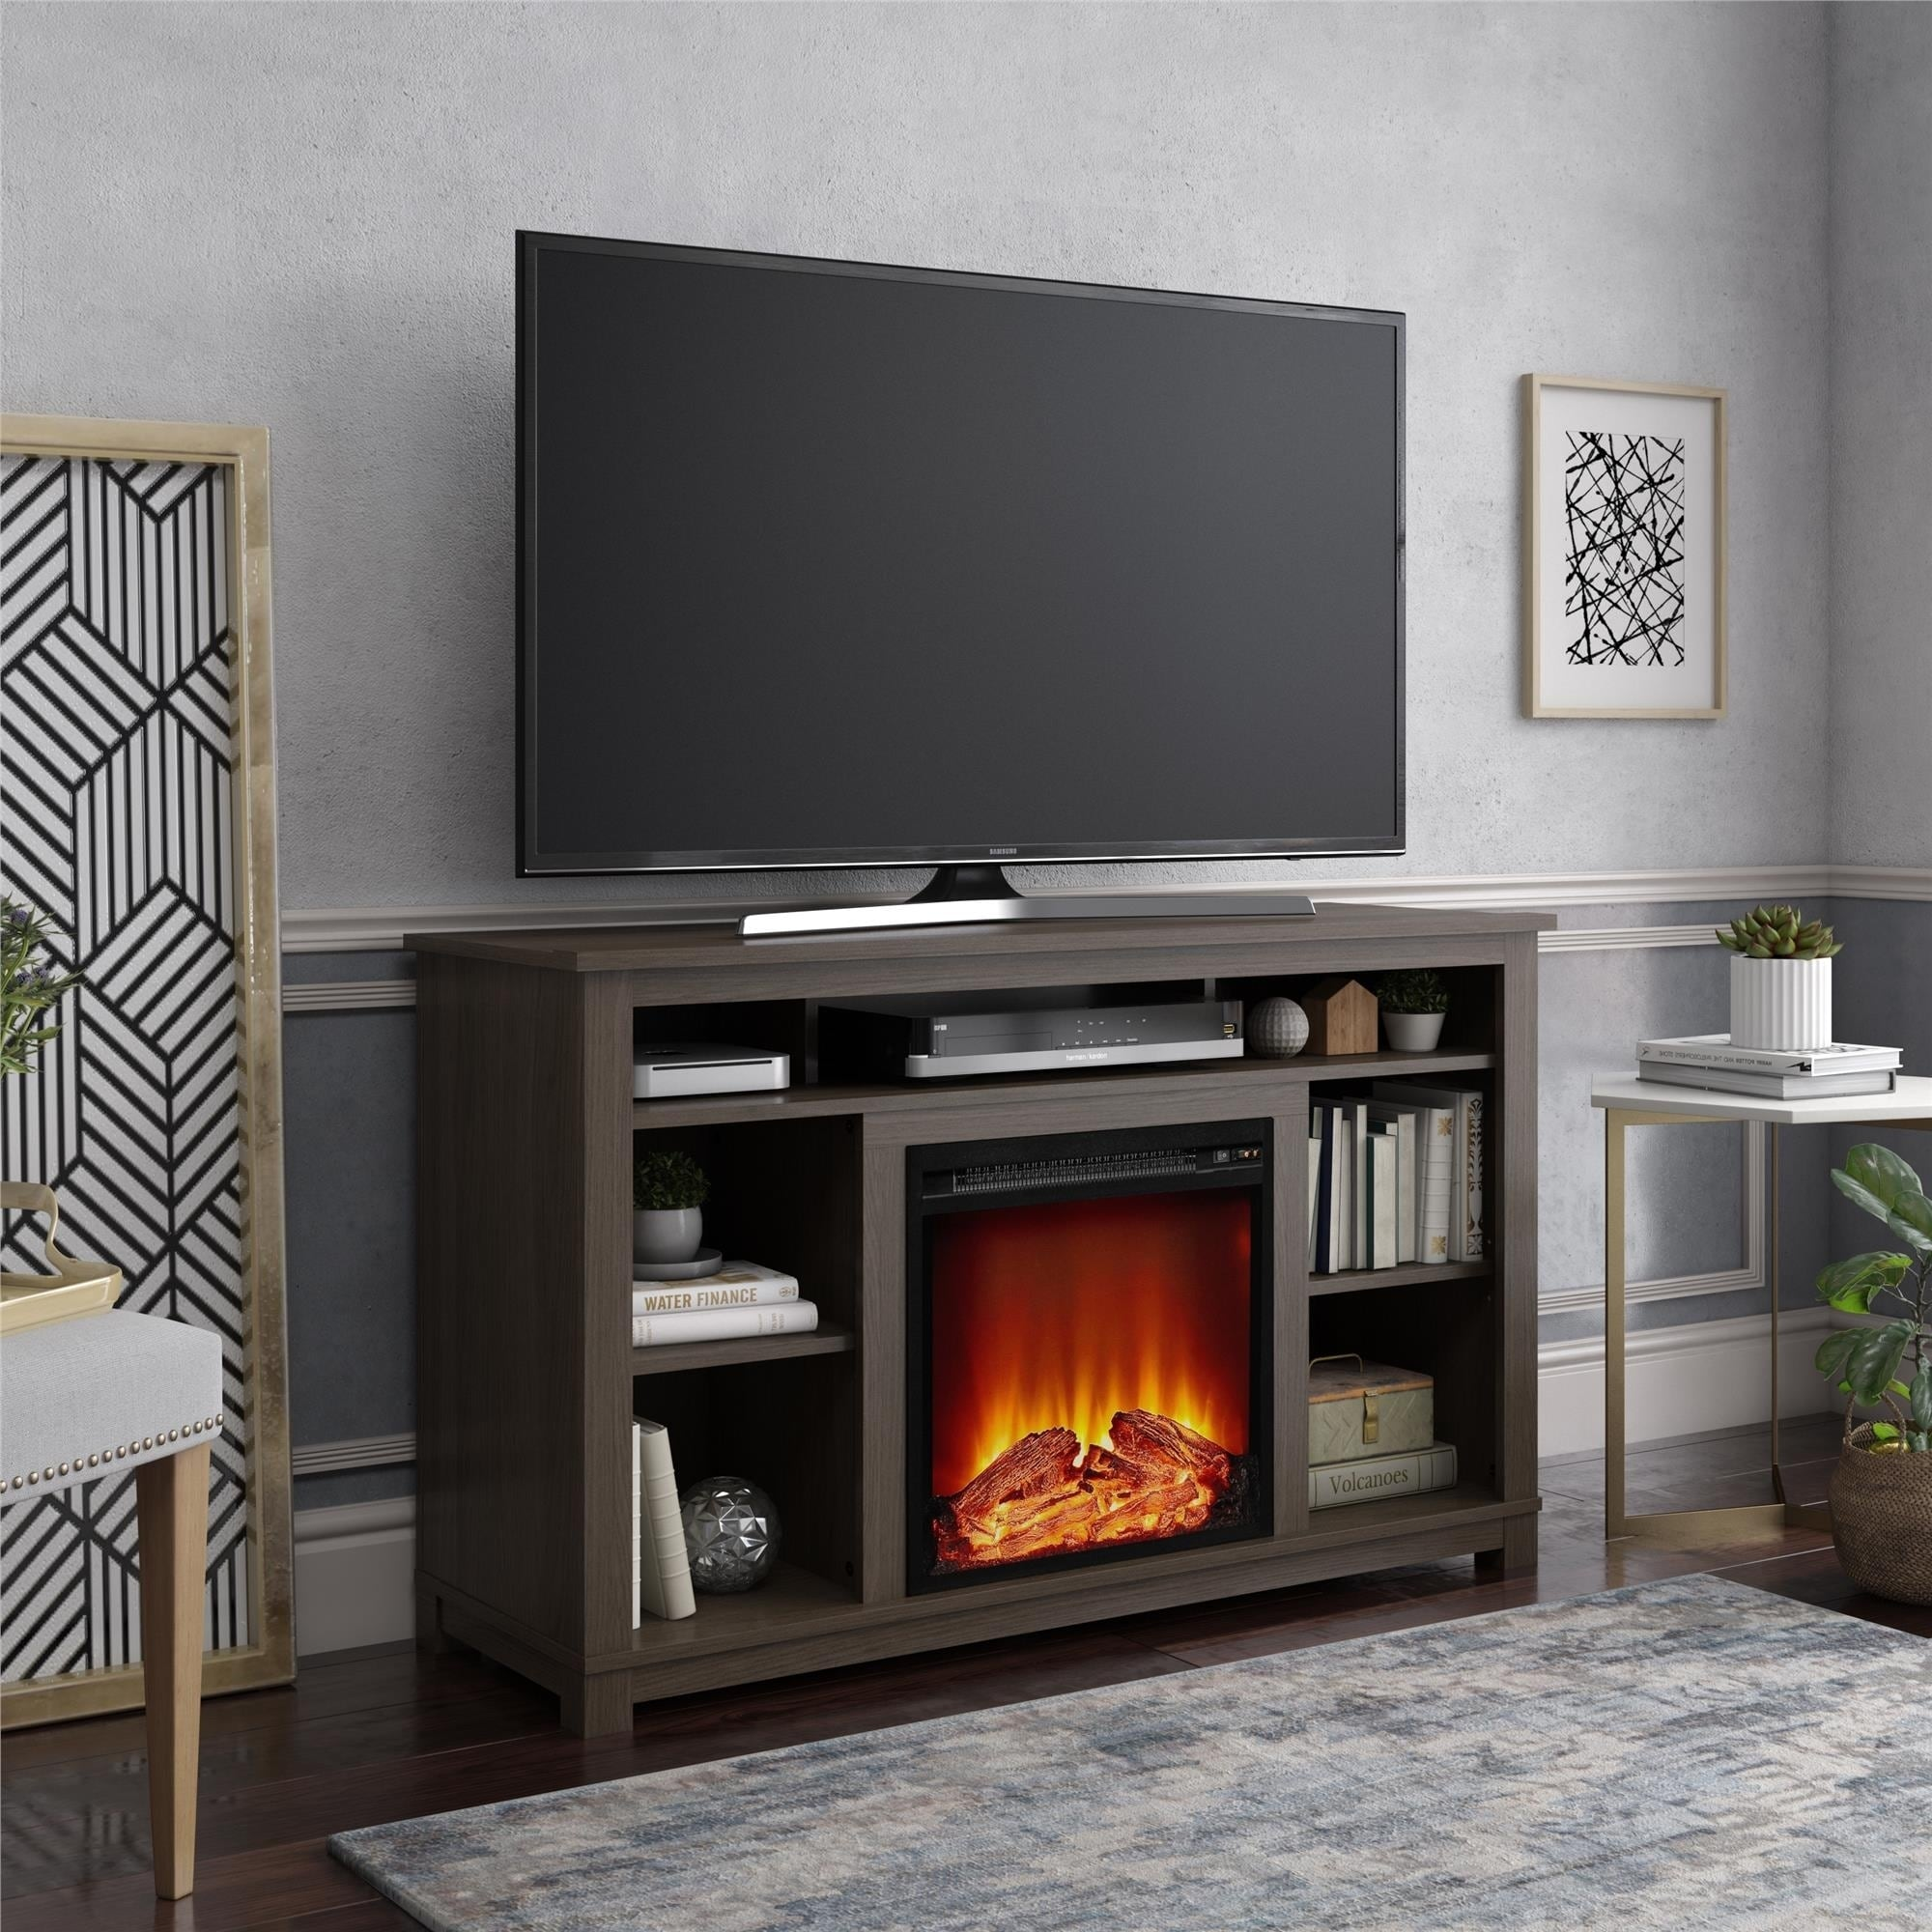 Avenue Greene Barrown Downs Fireplace Tv Stand For Tvs Up To 55 Inches